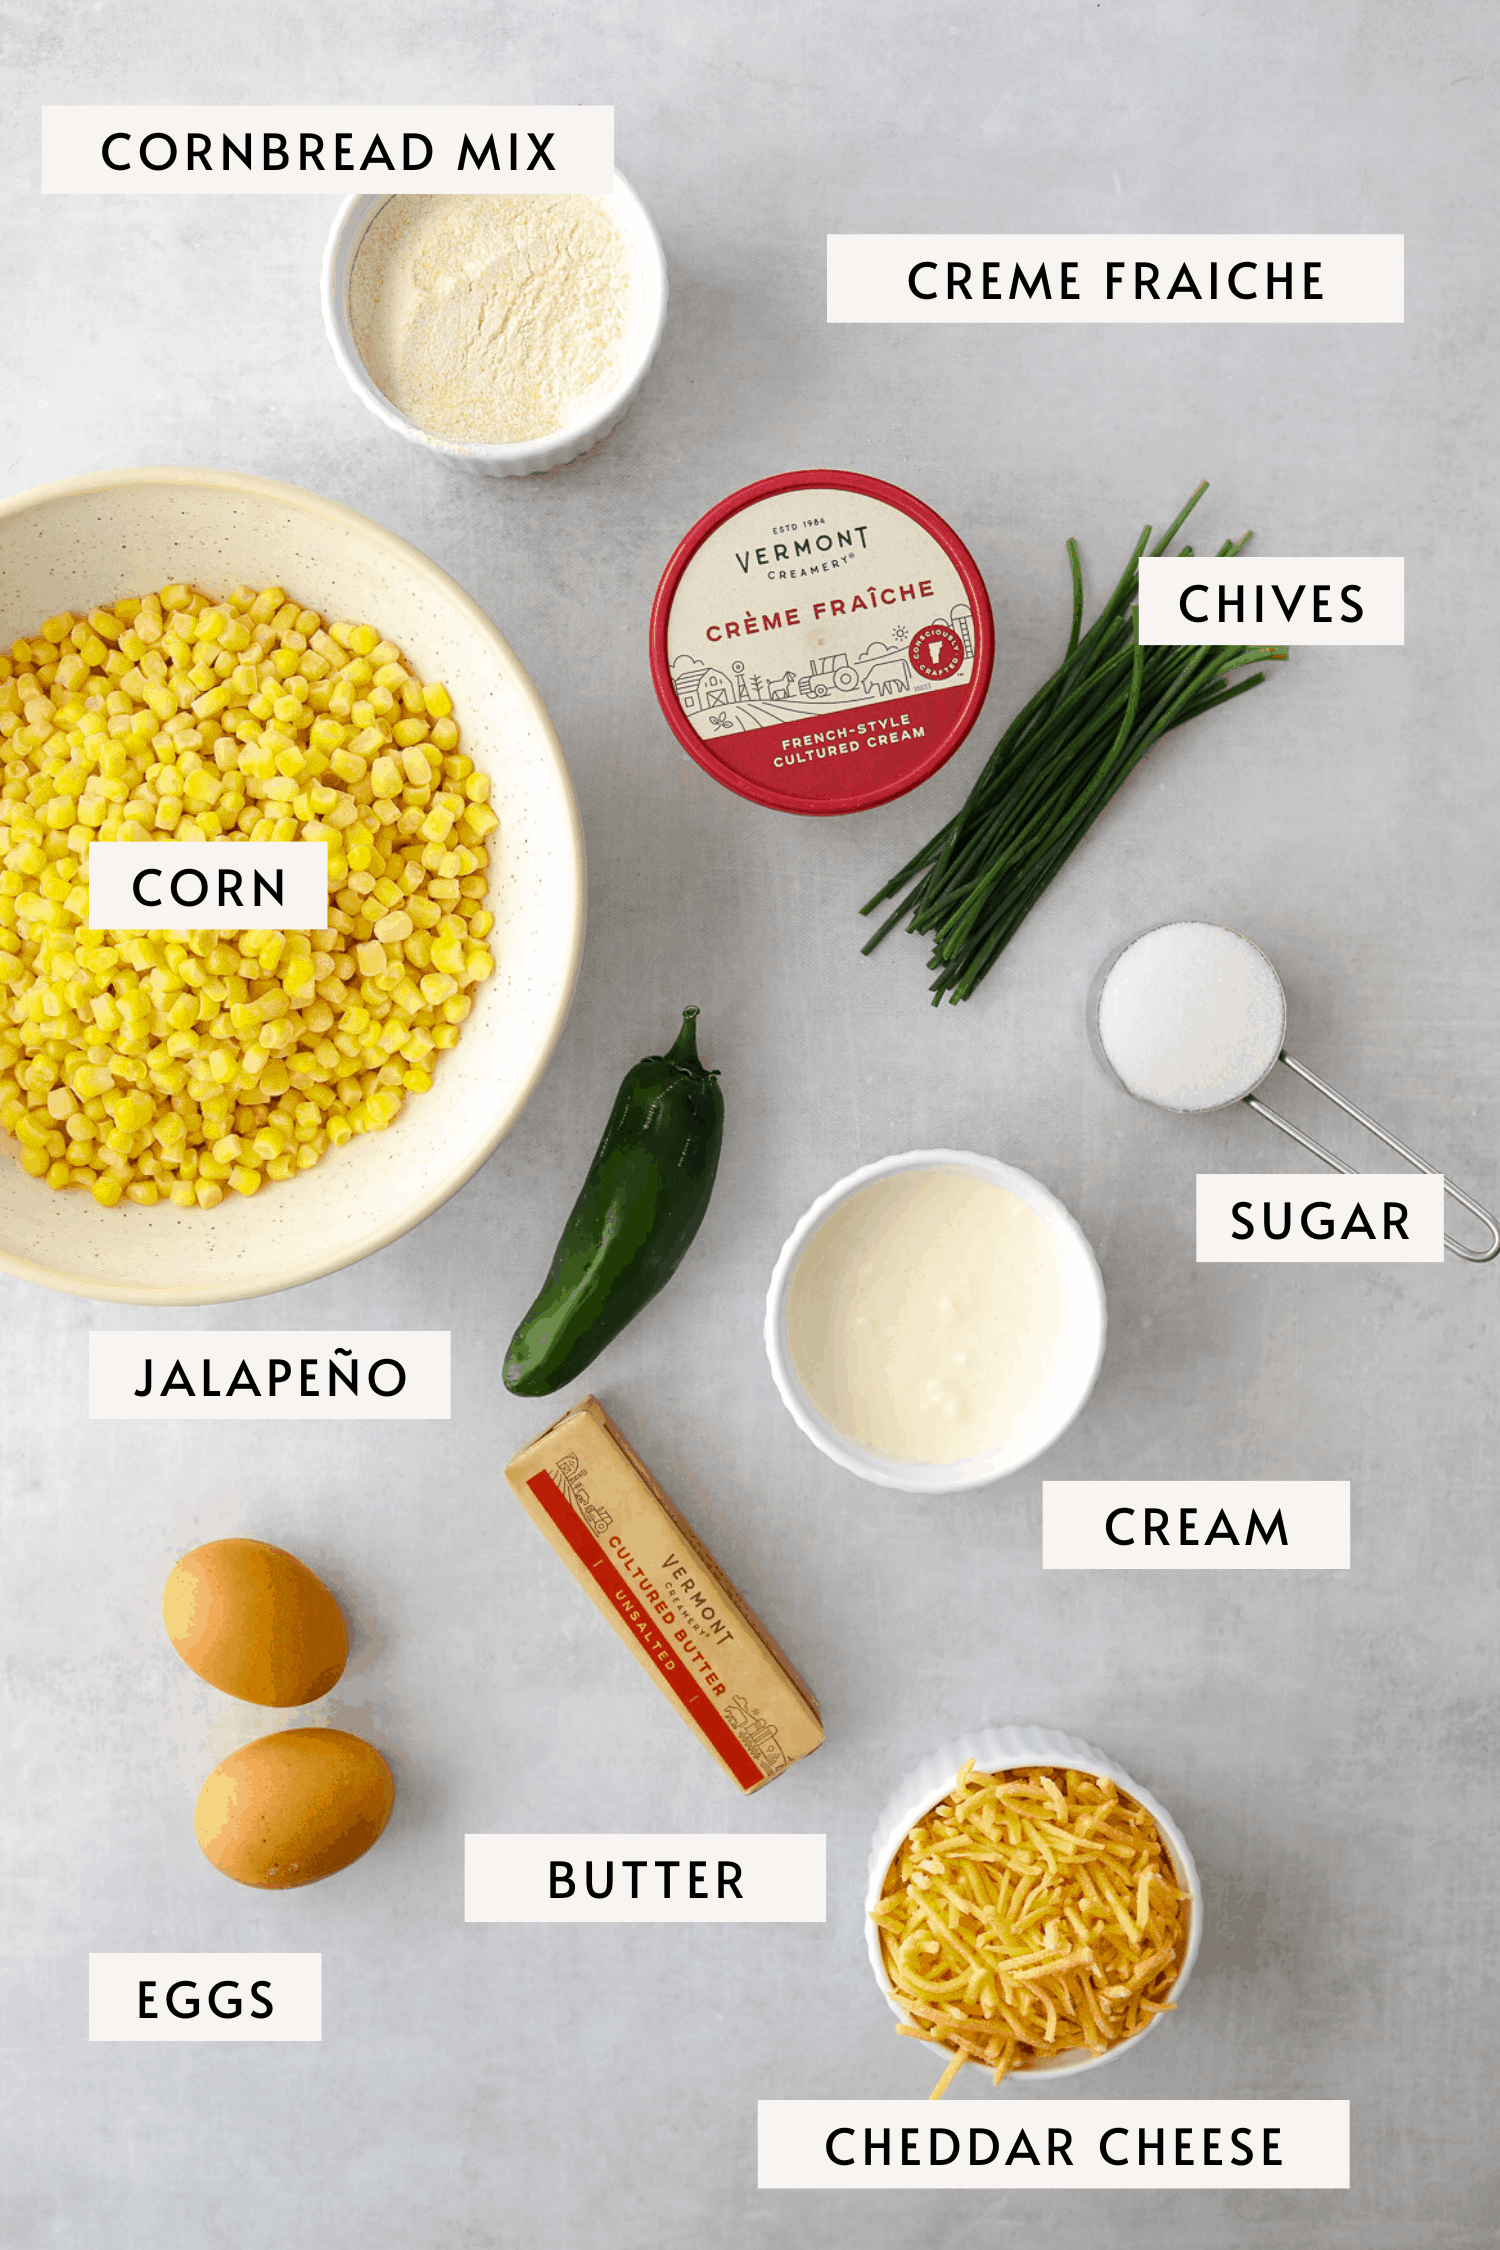 recipe ingredients on a blue background, eggs, cheddar cheese, corn kernels, jalapeño, sugar, chives, butter, cream